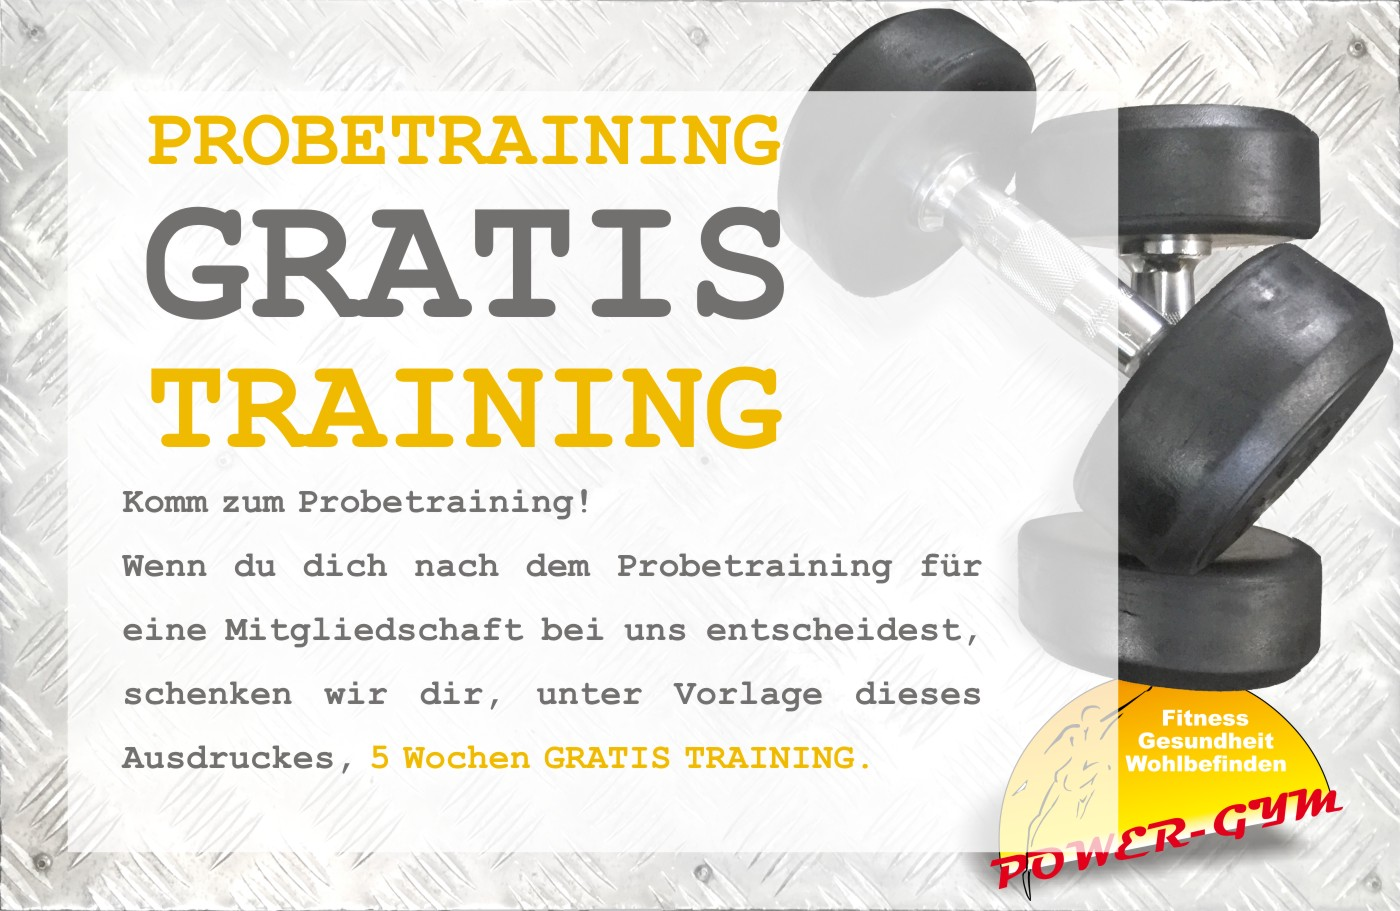 gratis probetraining fitnesscenter training